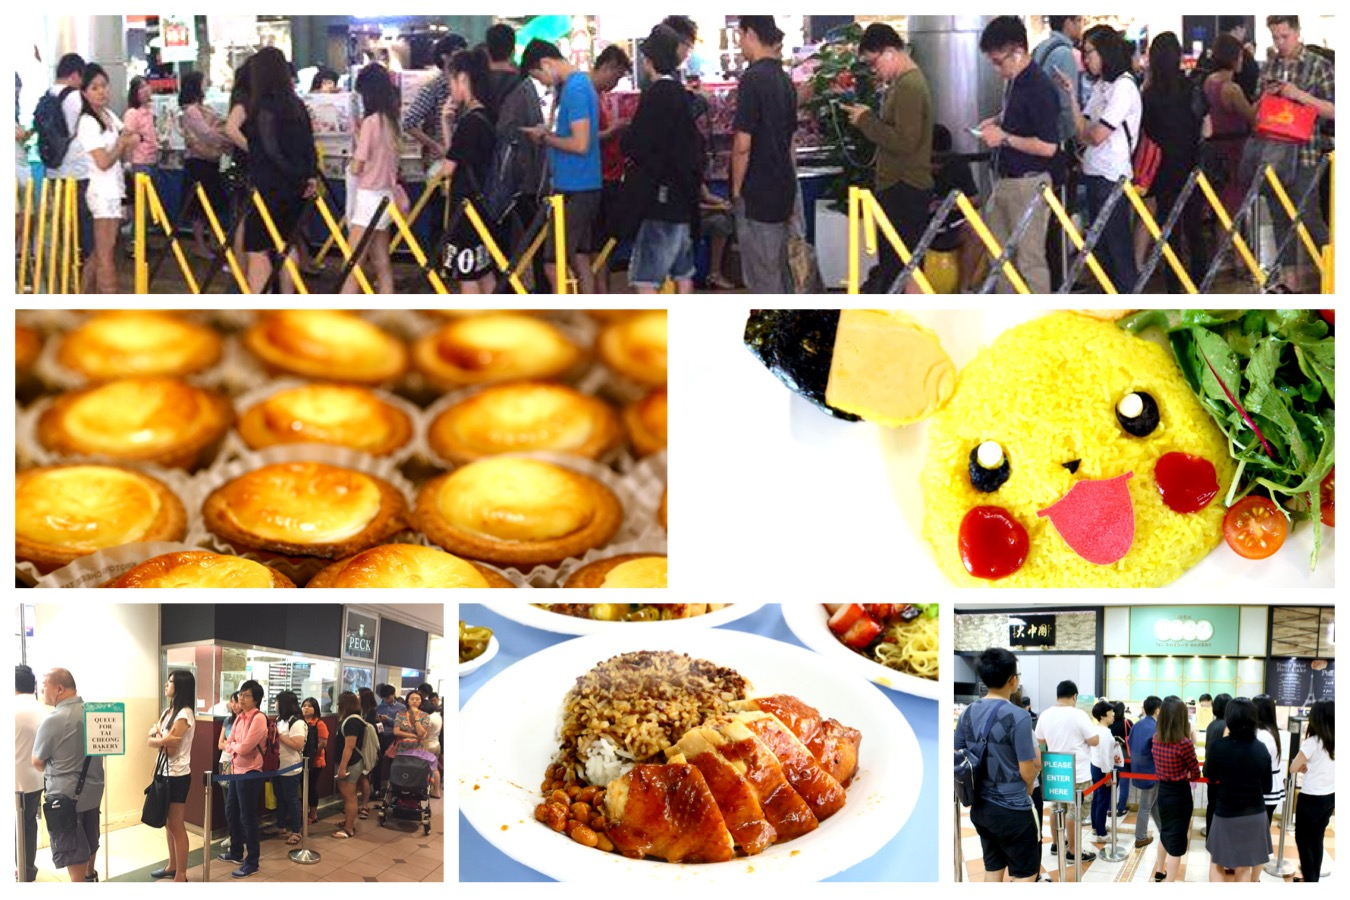 10 Food Places In Singapore With LONG QUEUES In 2016. Worth The Queue Or Not?